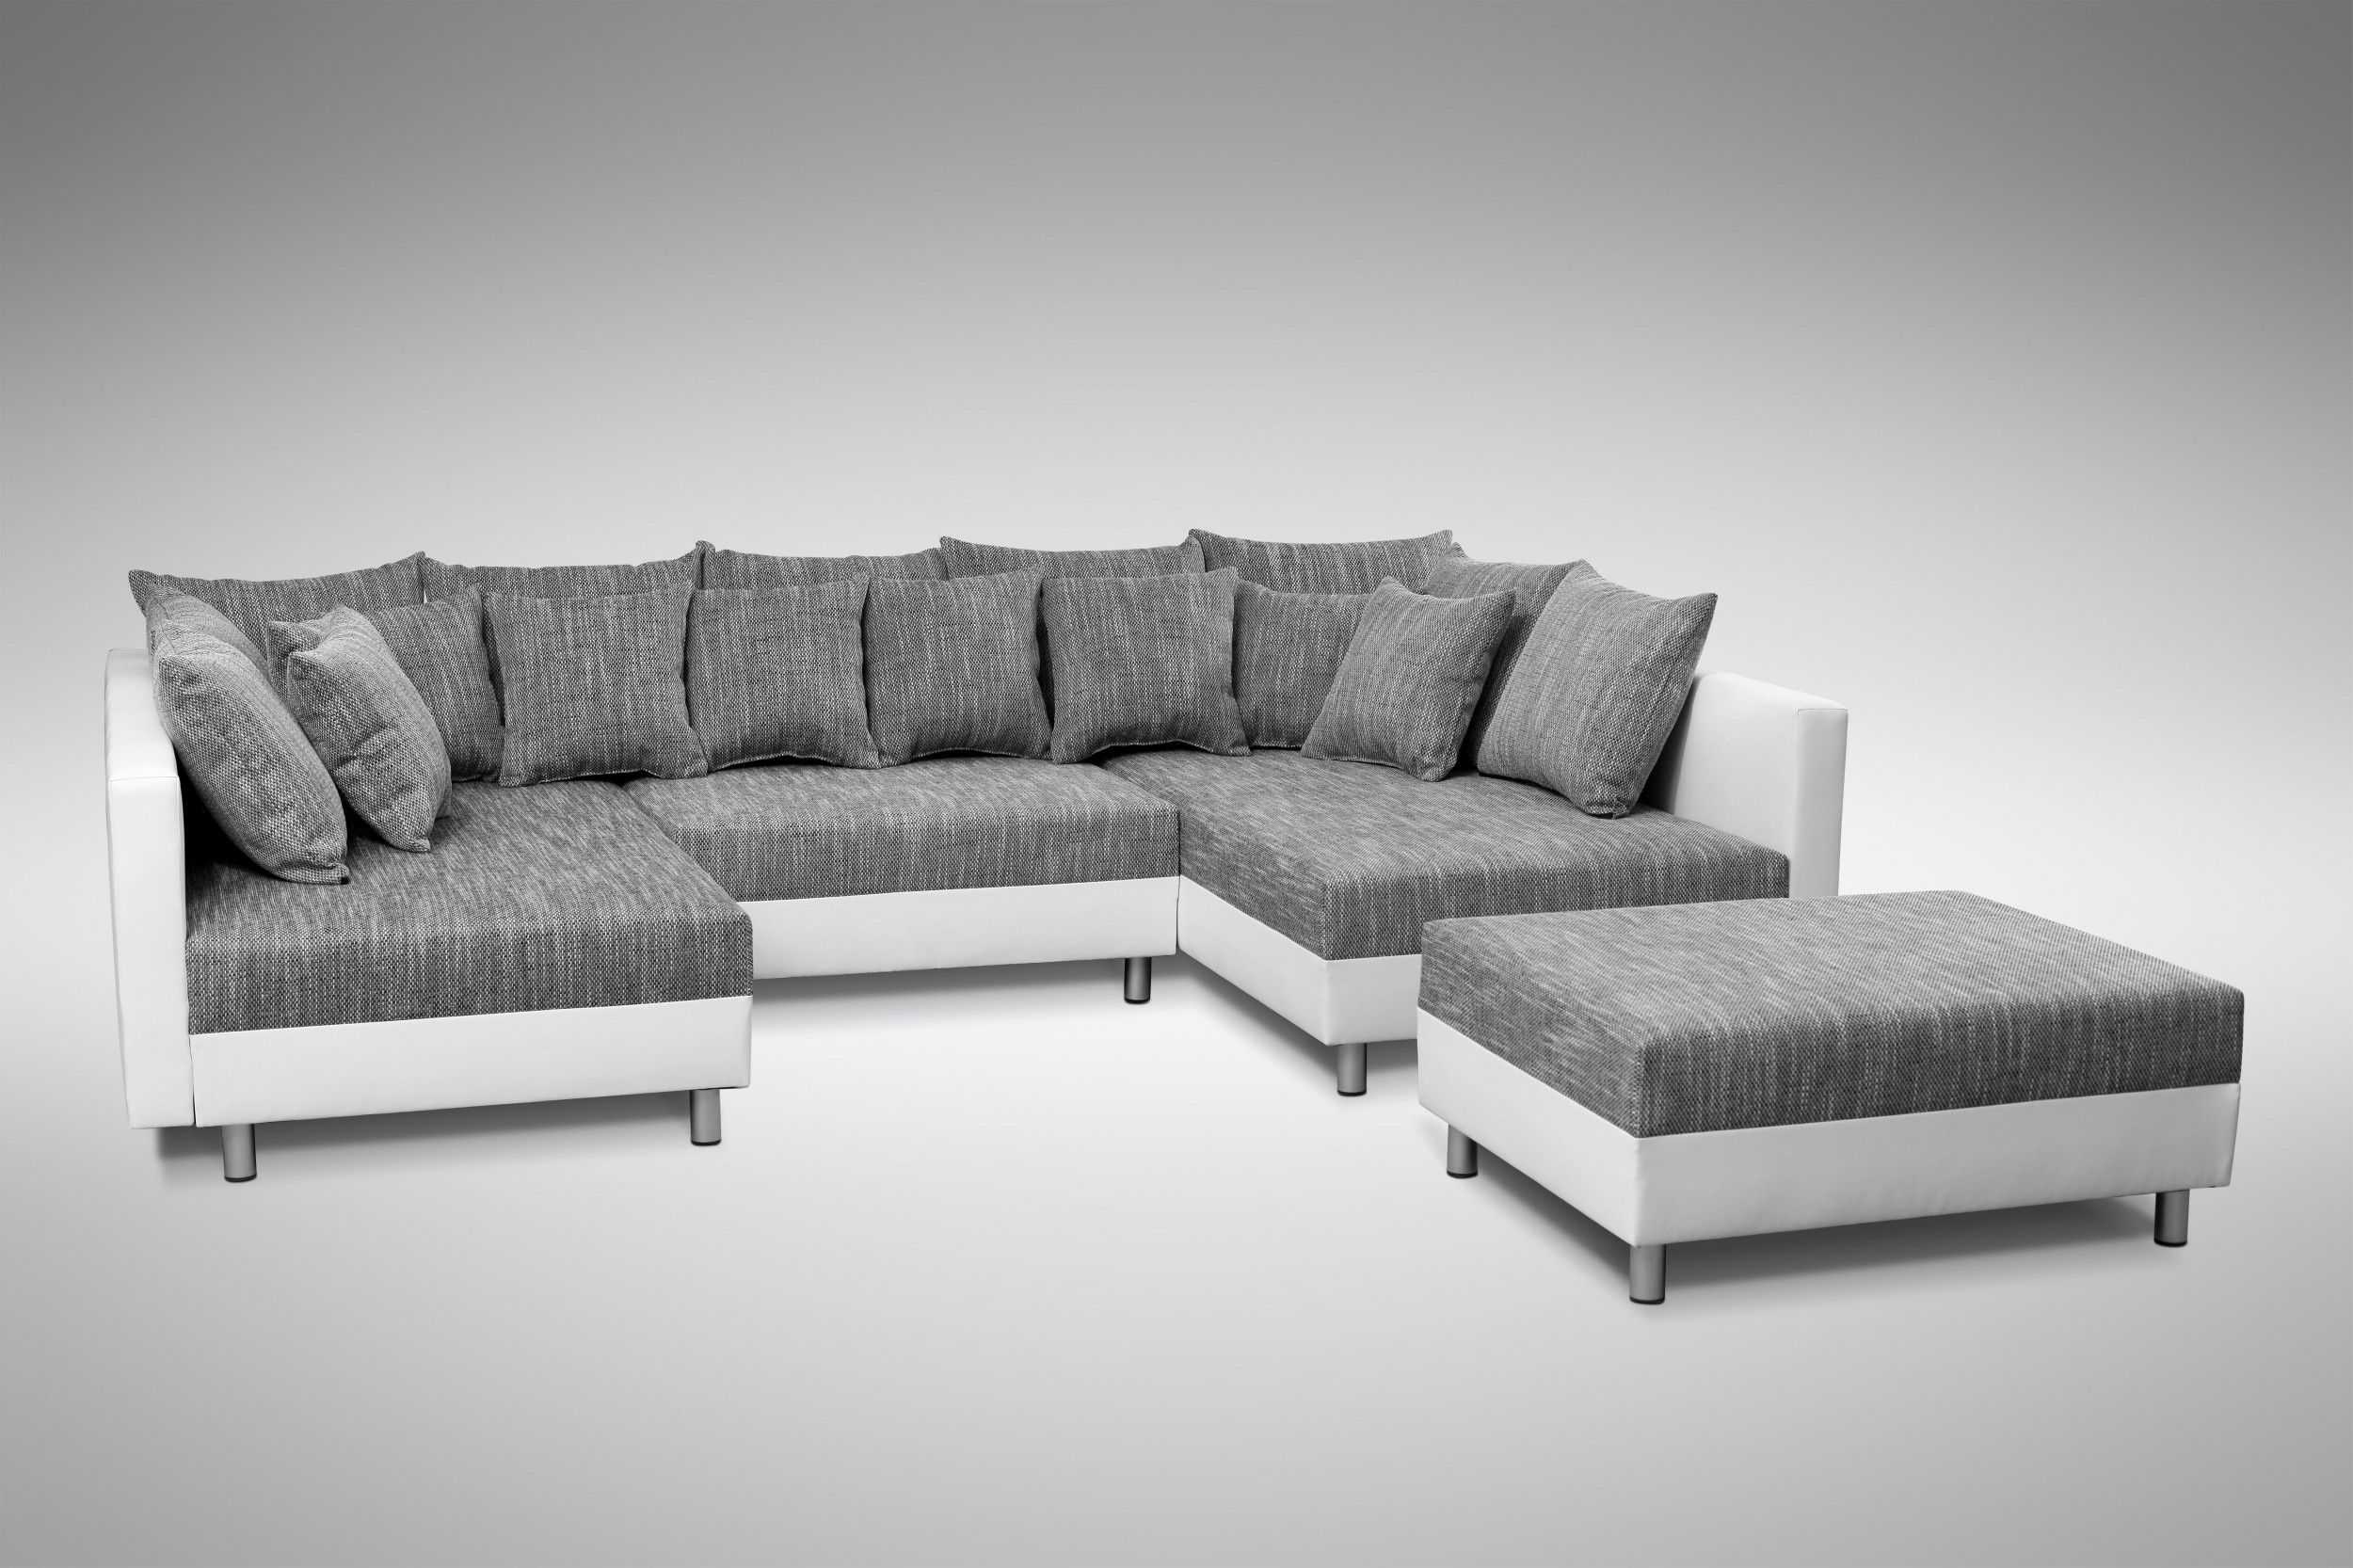 sofa couch ecksofa eckcouch in weiss hellgrau eckcouch mit hocker minsk xxl polsterm bel sofa. Black Bedroom Furniture Sets. Home Design Ideas